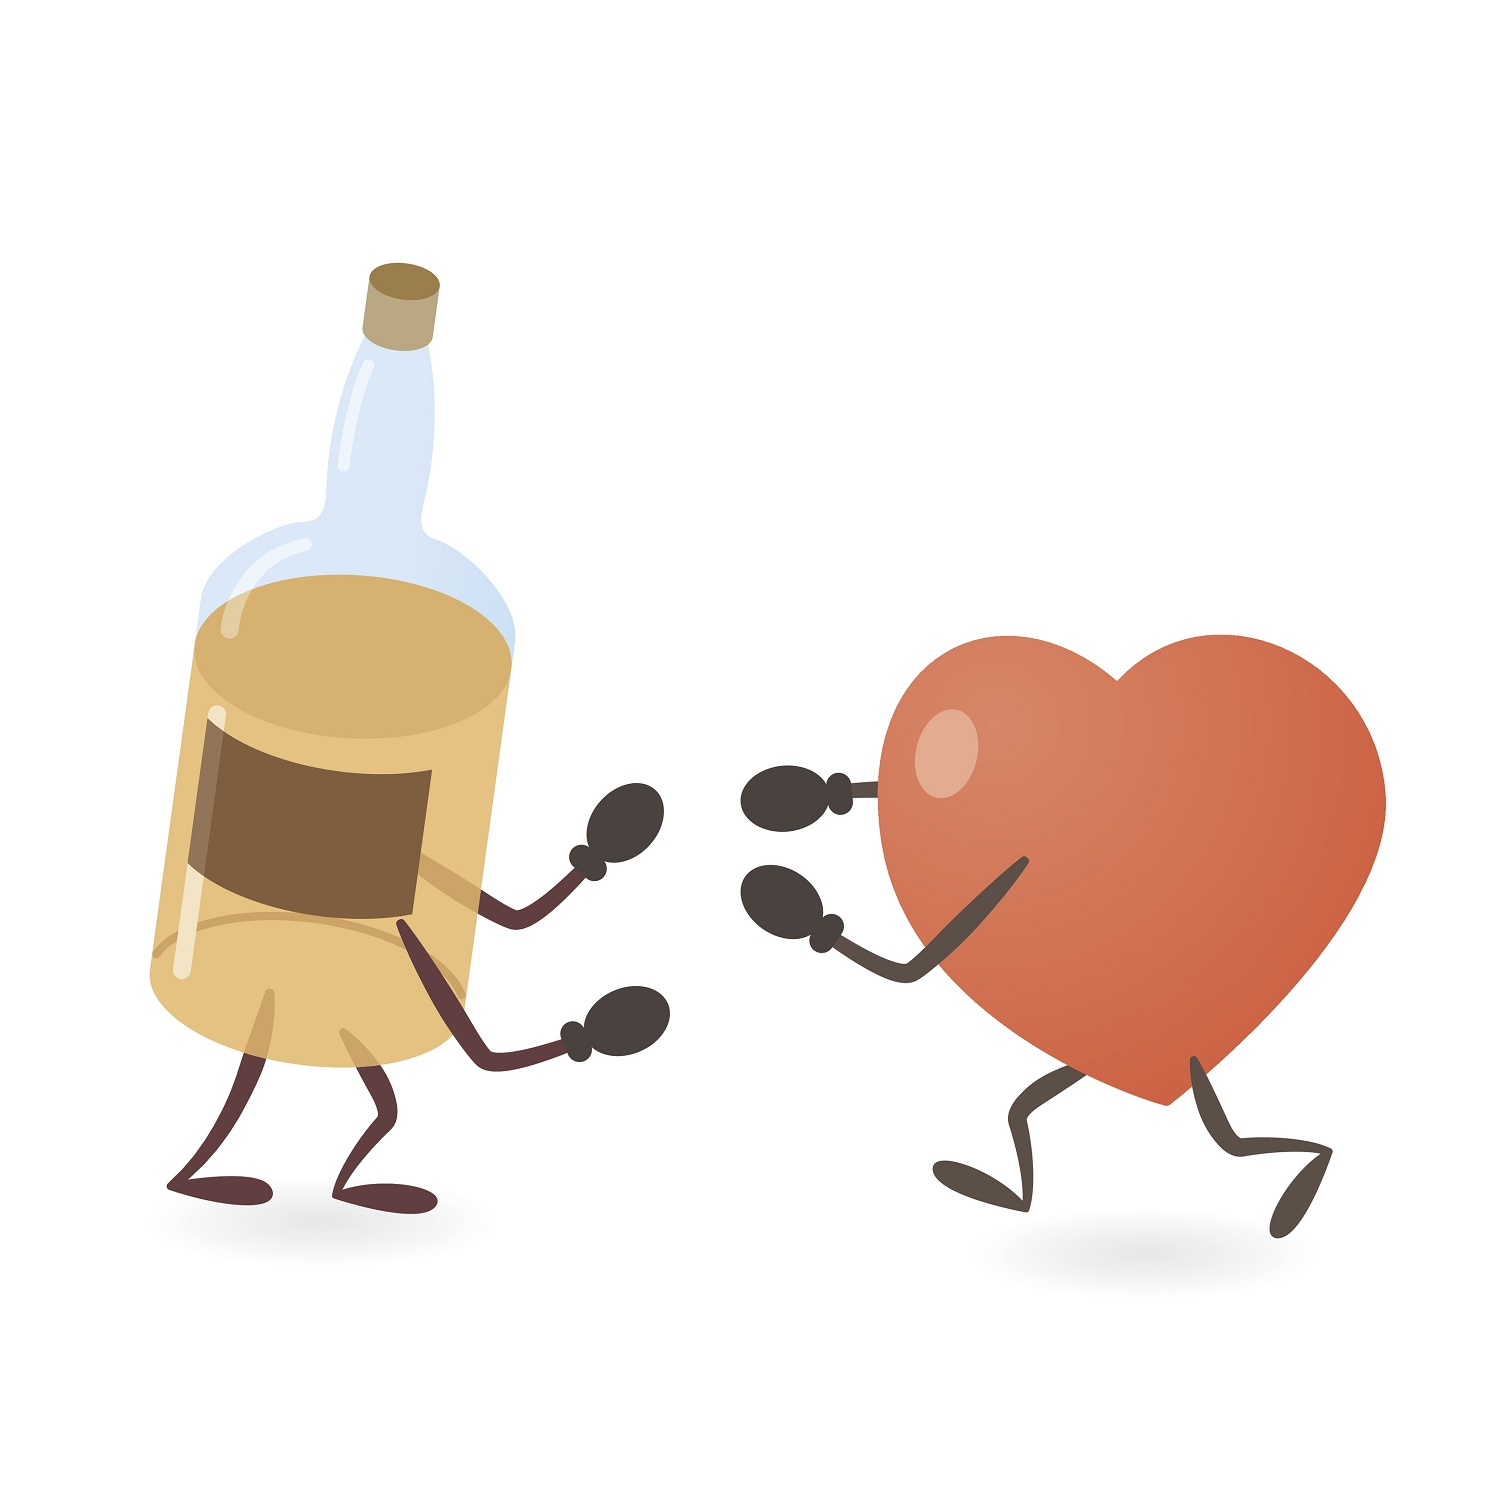 Alcohol clipart alcohol consumption. Use affects levels of